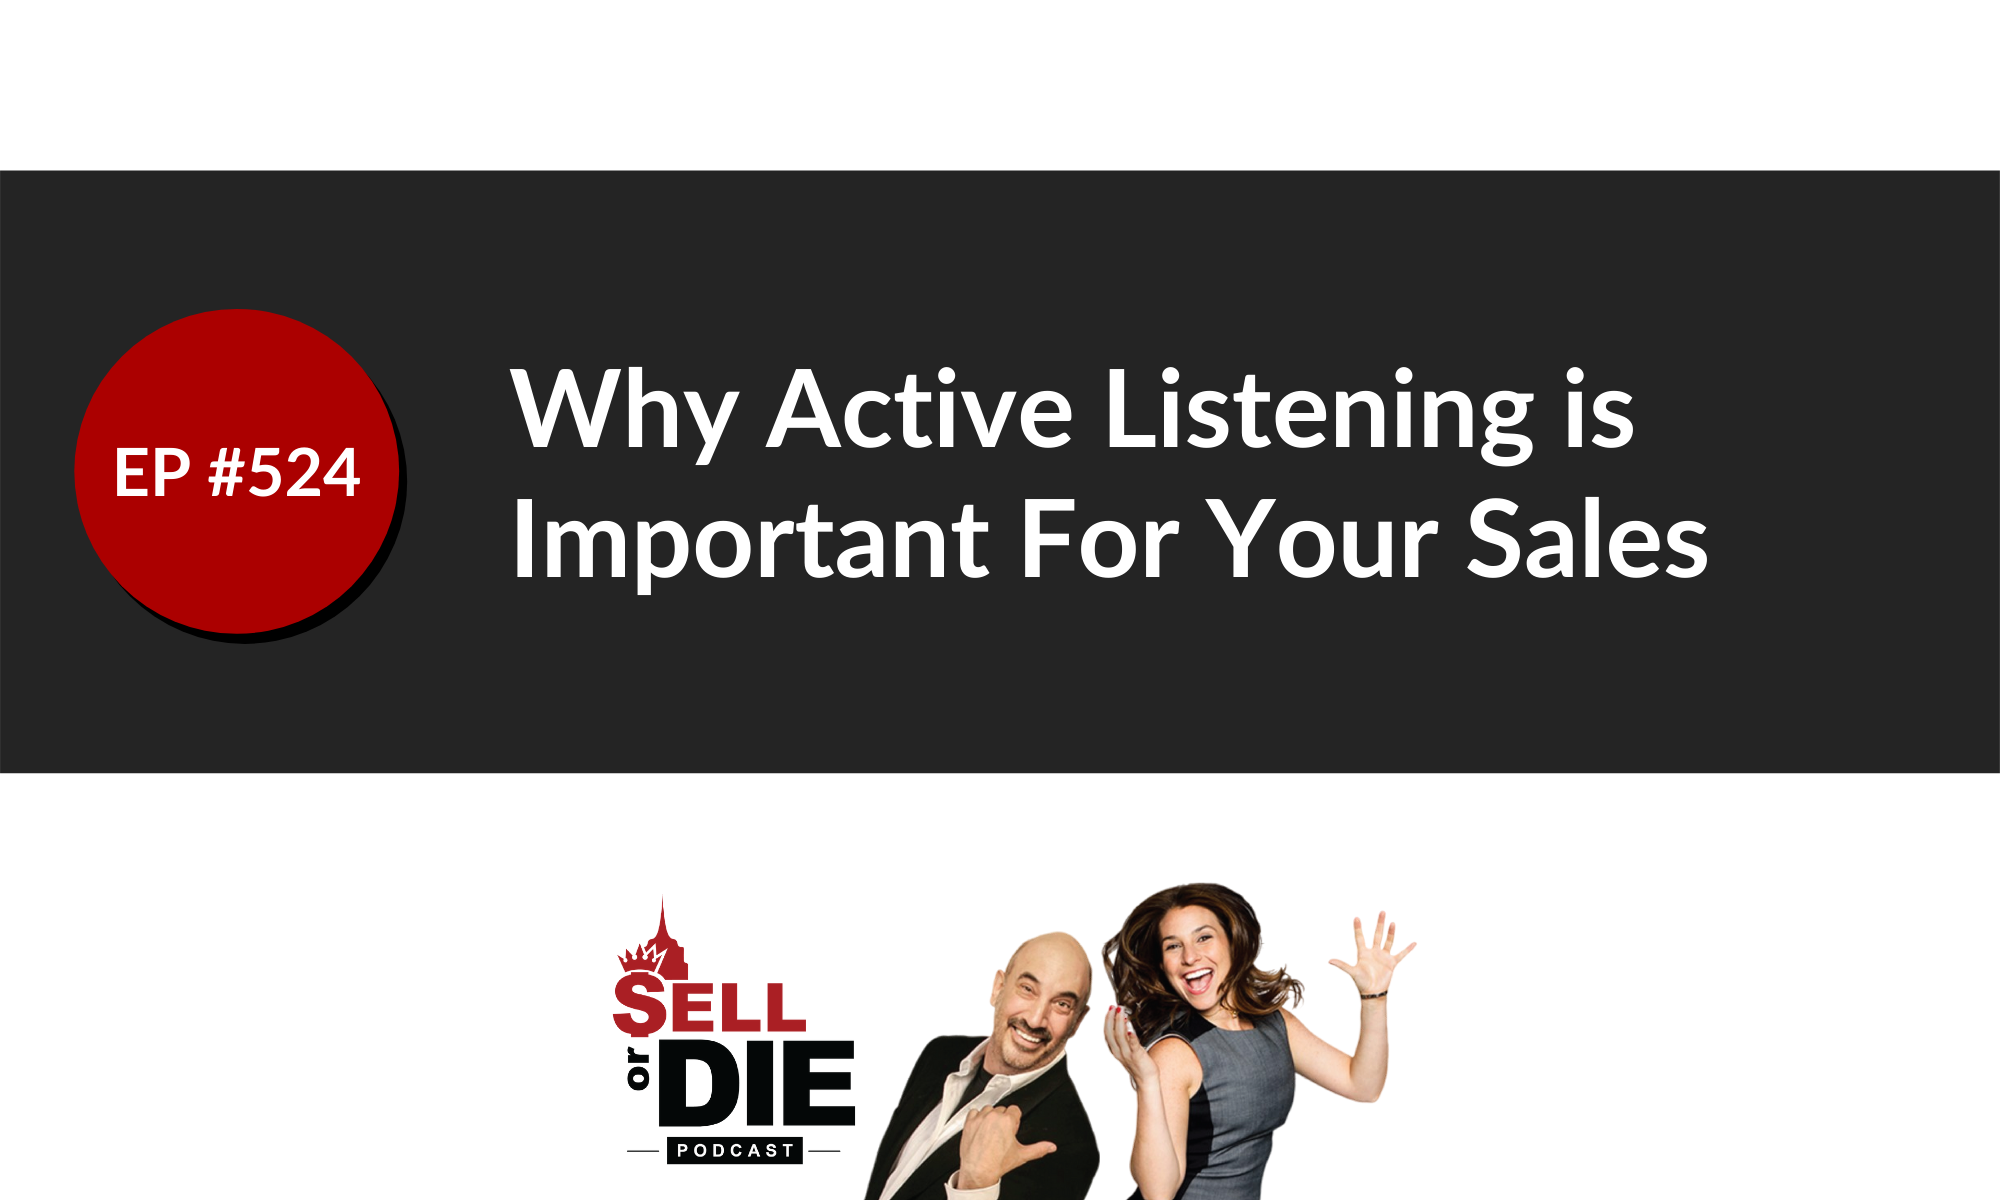 Why Active Listening is Important